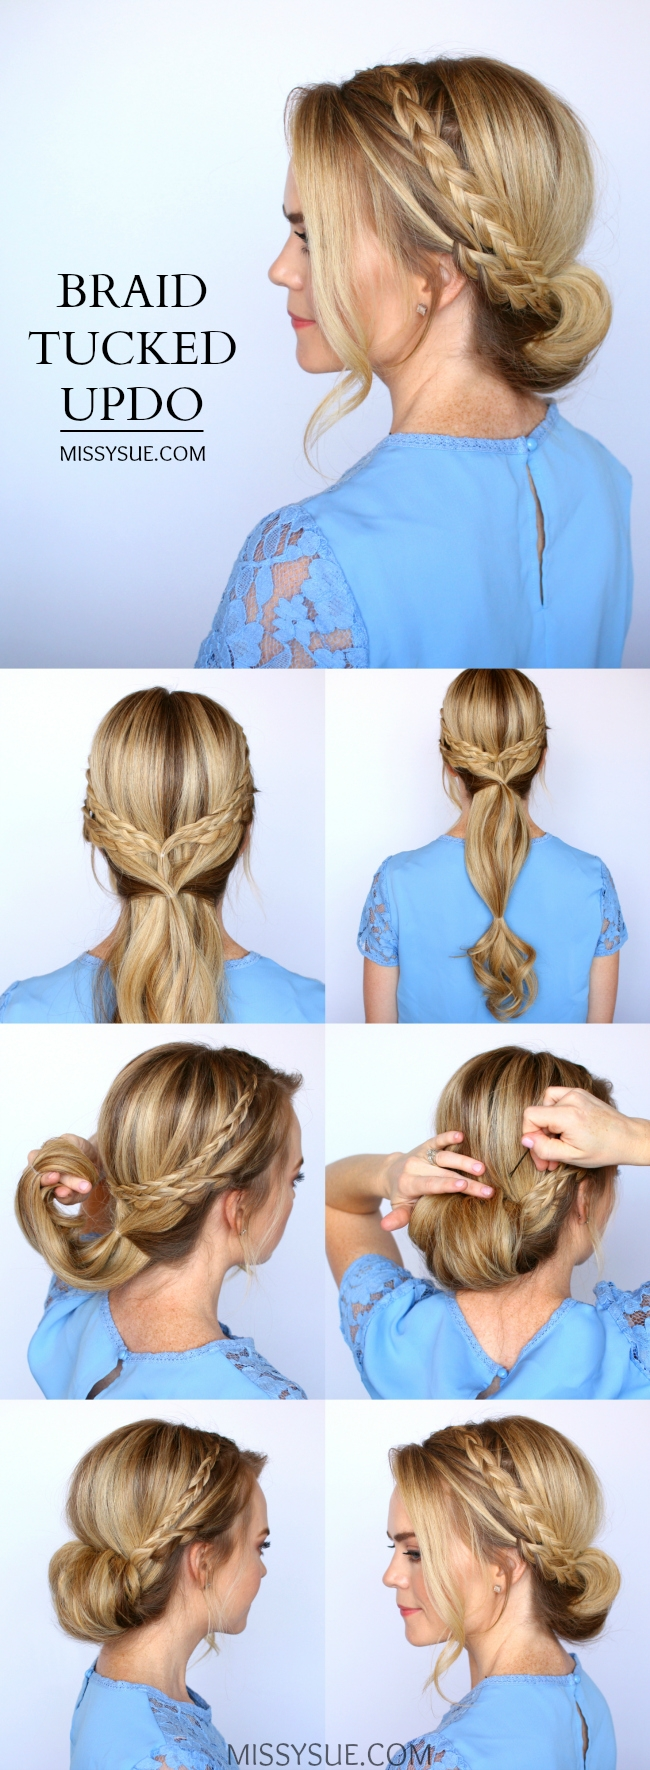 braid-tucked-updo-hairstyle